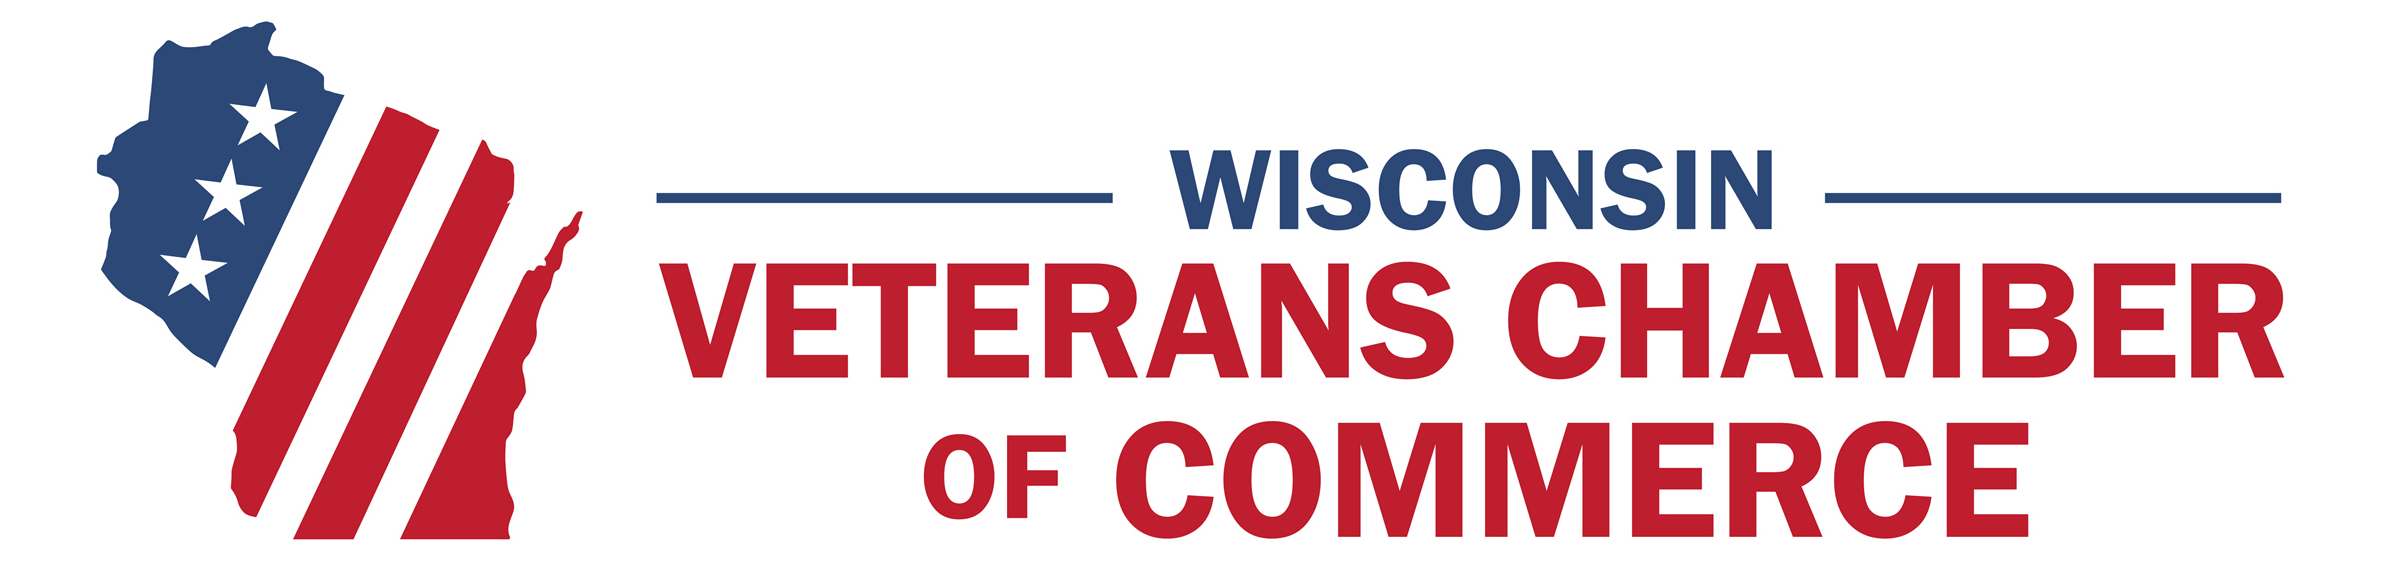 Two Wisconsin cities among Top 20 Cities for Veteran Entrepreneurs